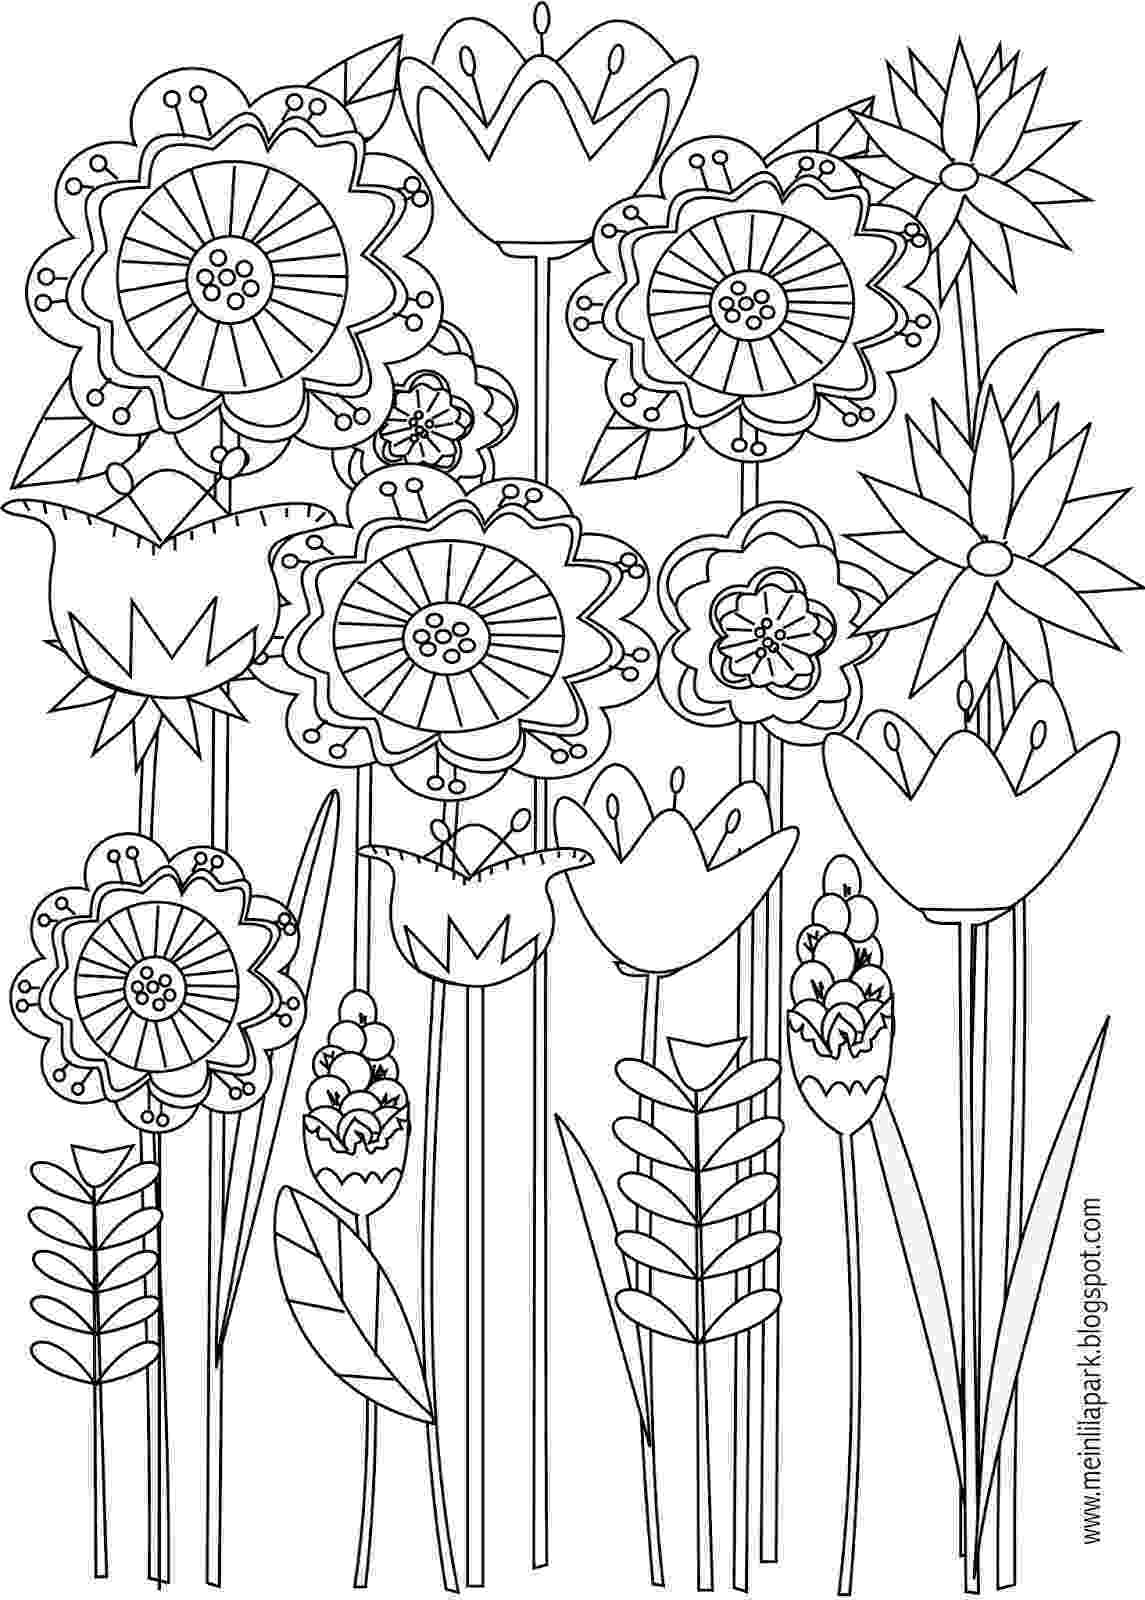 flowers printable coloring pages simple flower coloring pages getcoloringpagescom printable coloring flowers pages